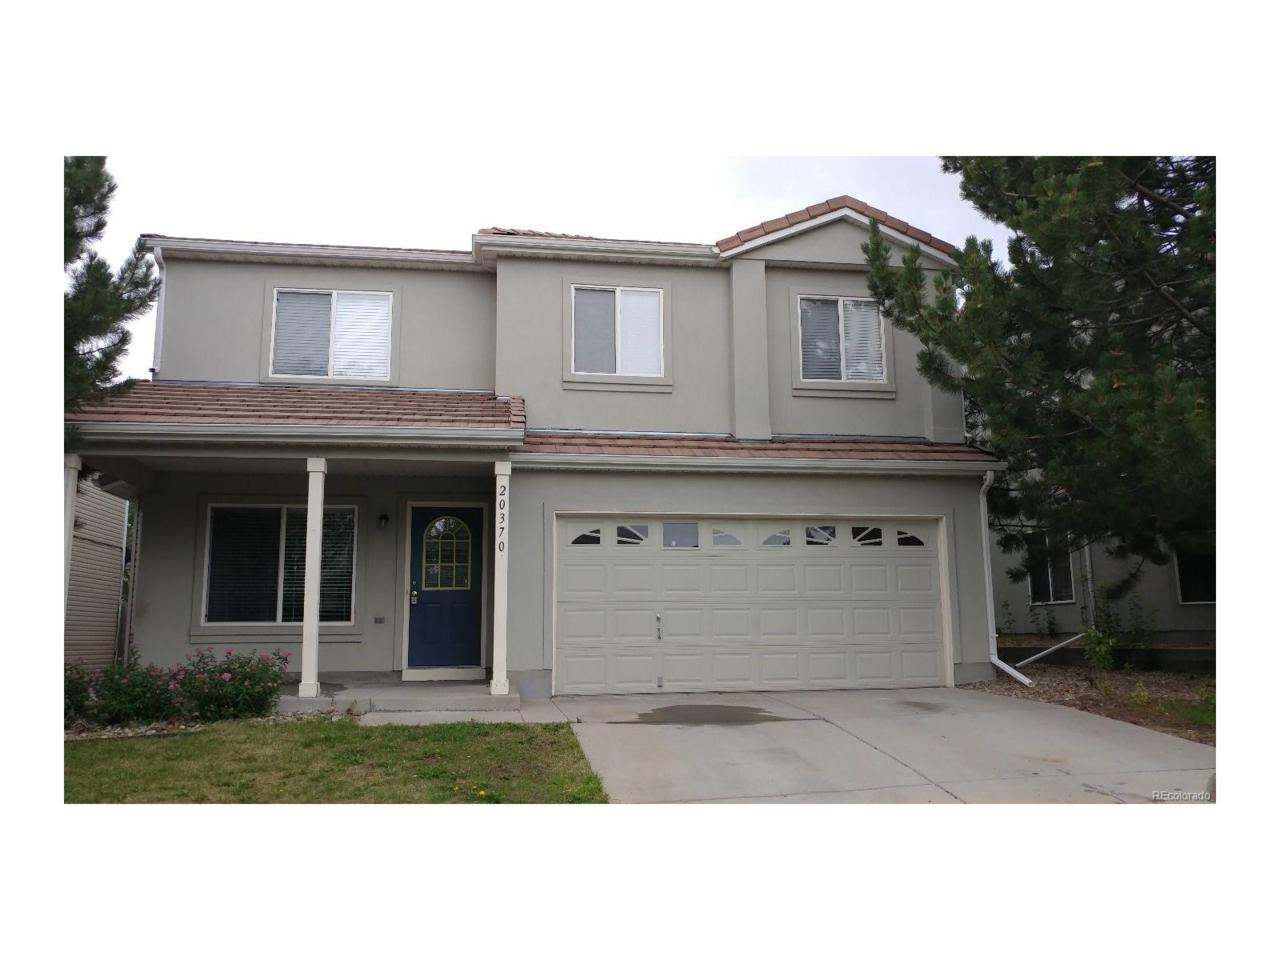 20370 E 48th Place, Denver, CO 80249 (MLS #3456056) :: 8z Real Estate